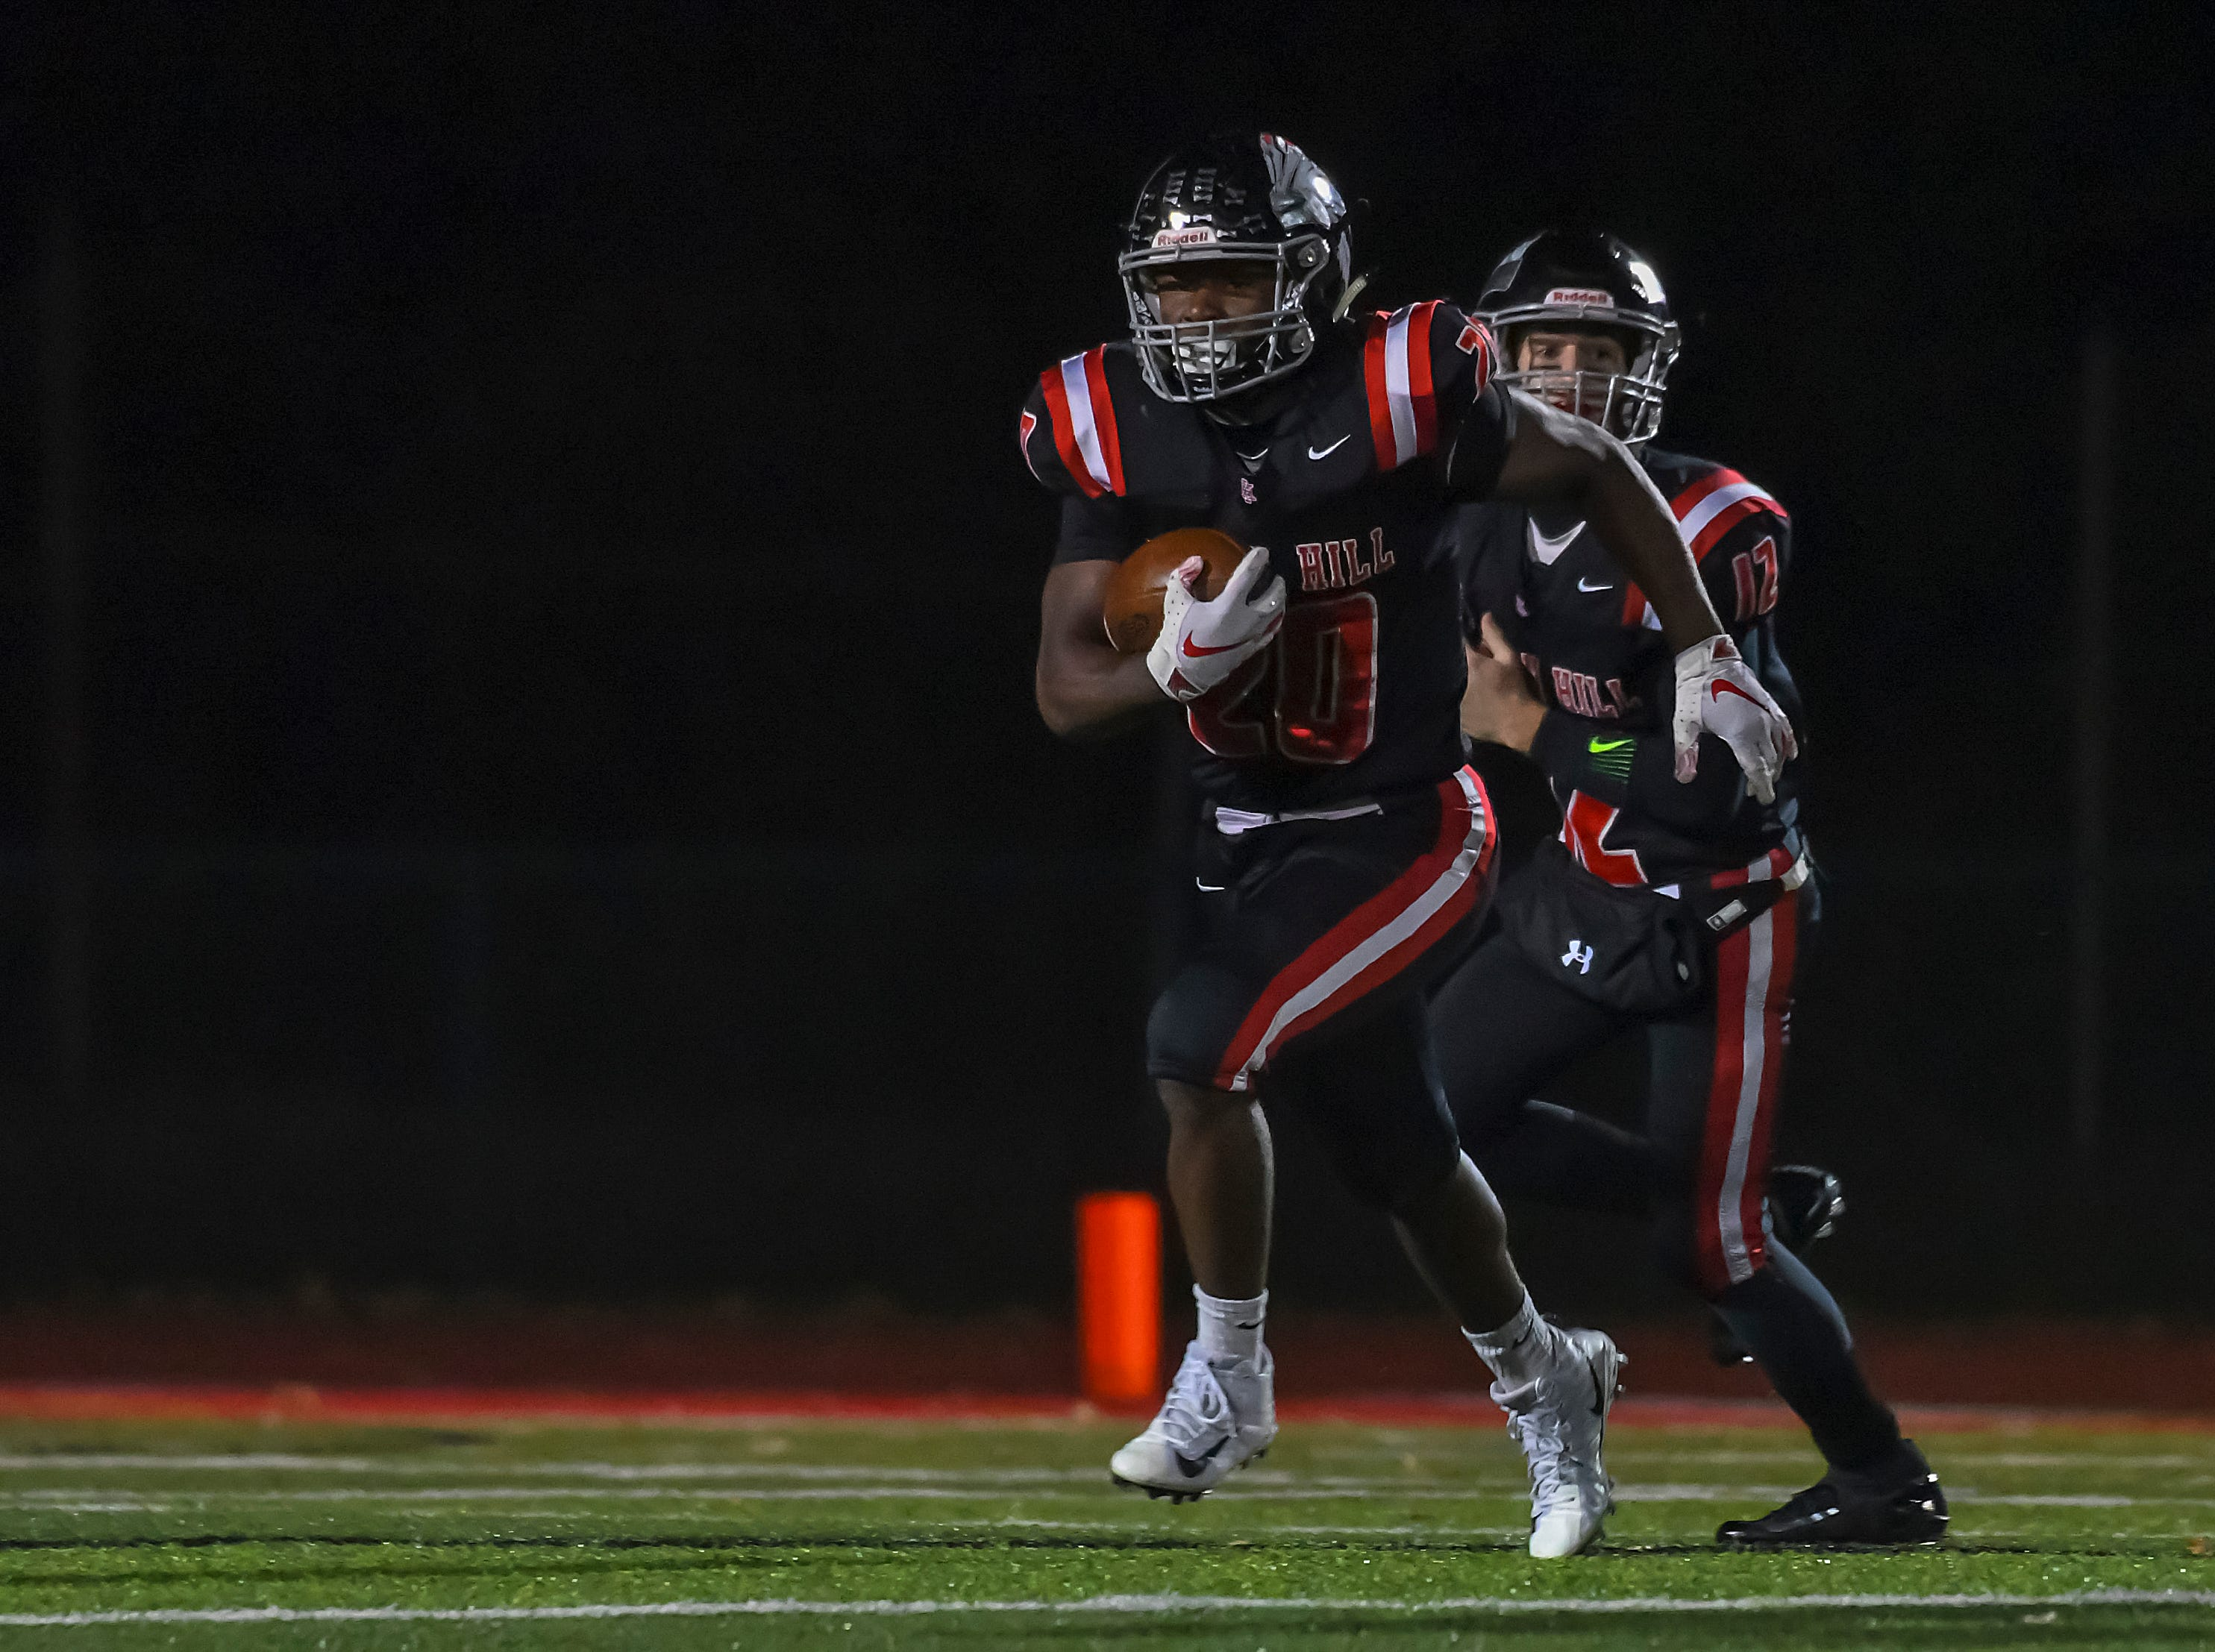 John Mark Williams (20) of Indian Hill runs the ball against Waverly in the OHSAA D4 Region 16 Playoffs at Indian Hill High School, Saturday, Nov. 3, 2018